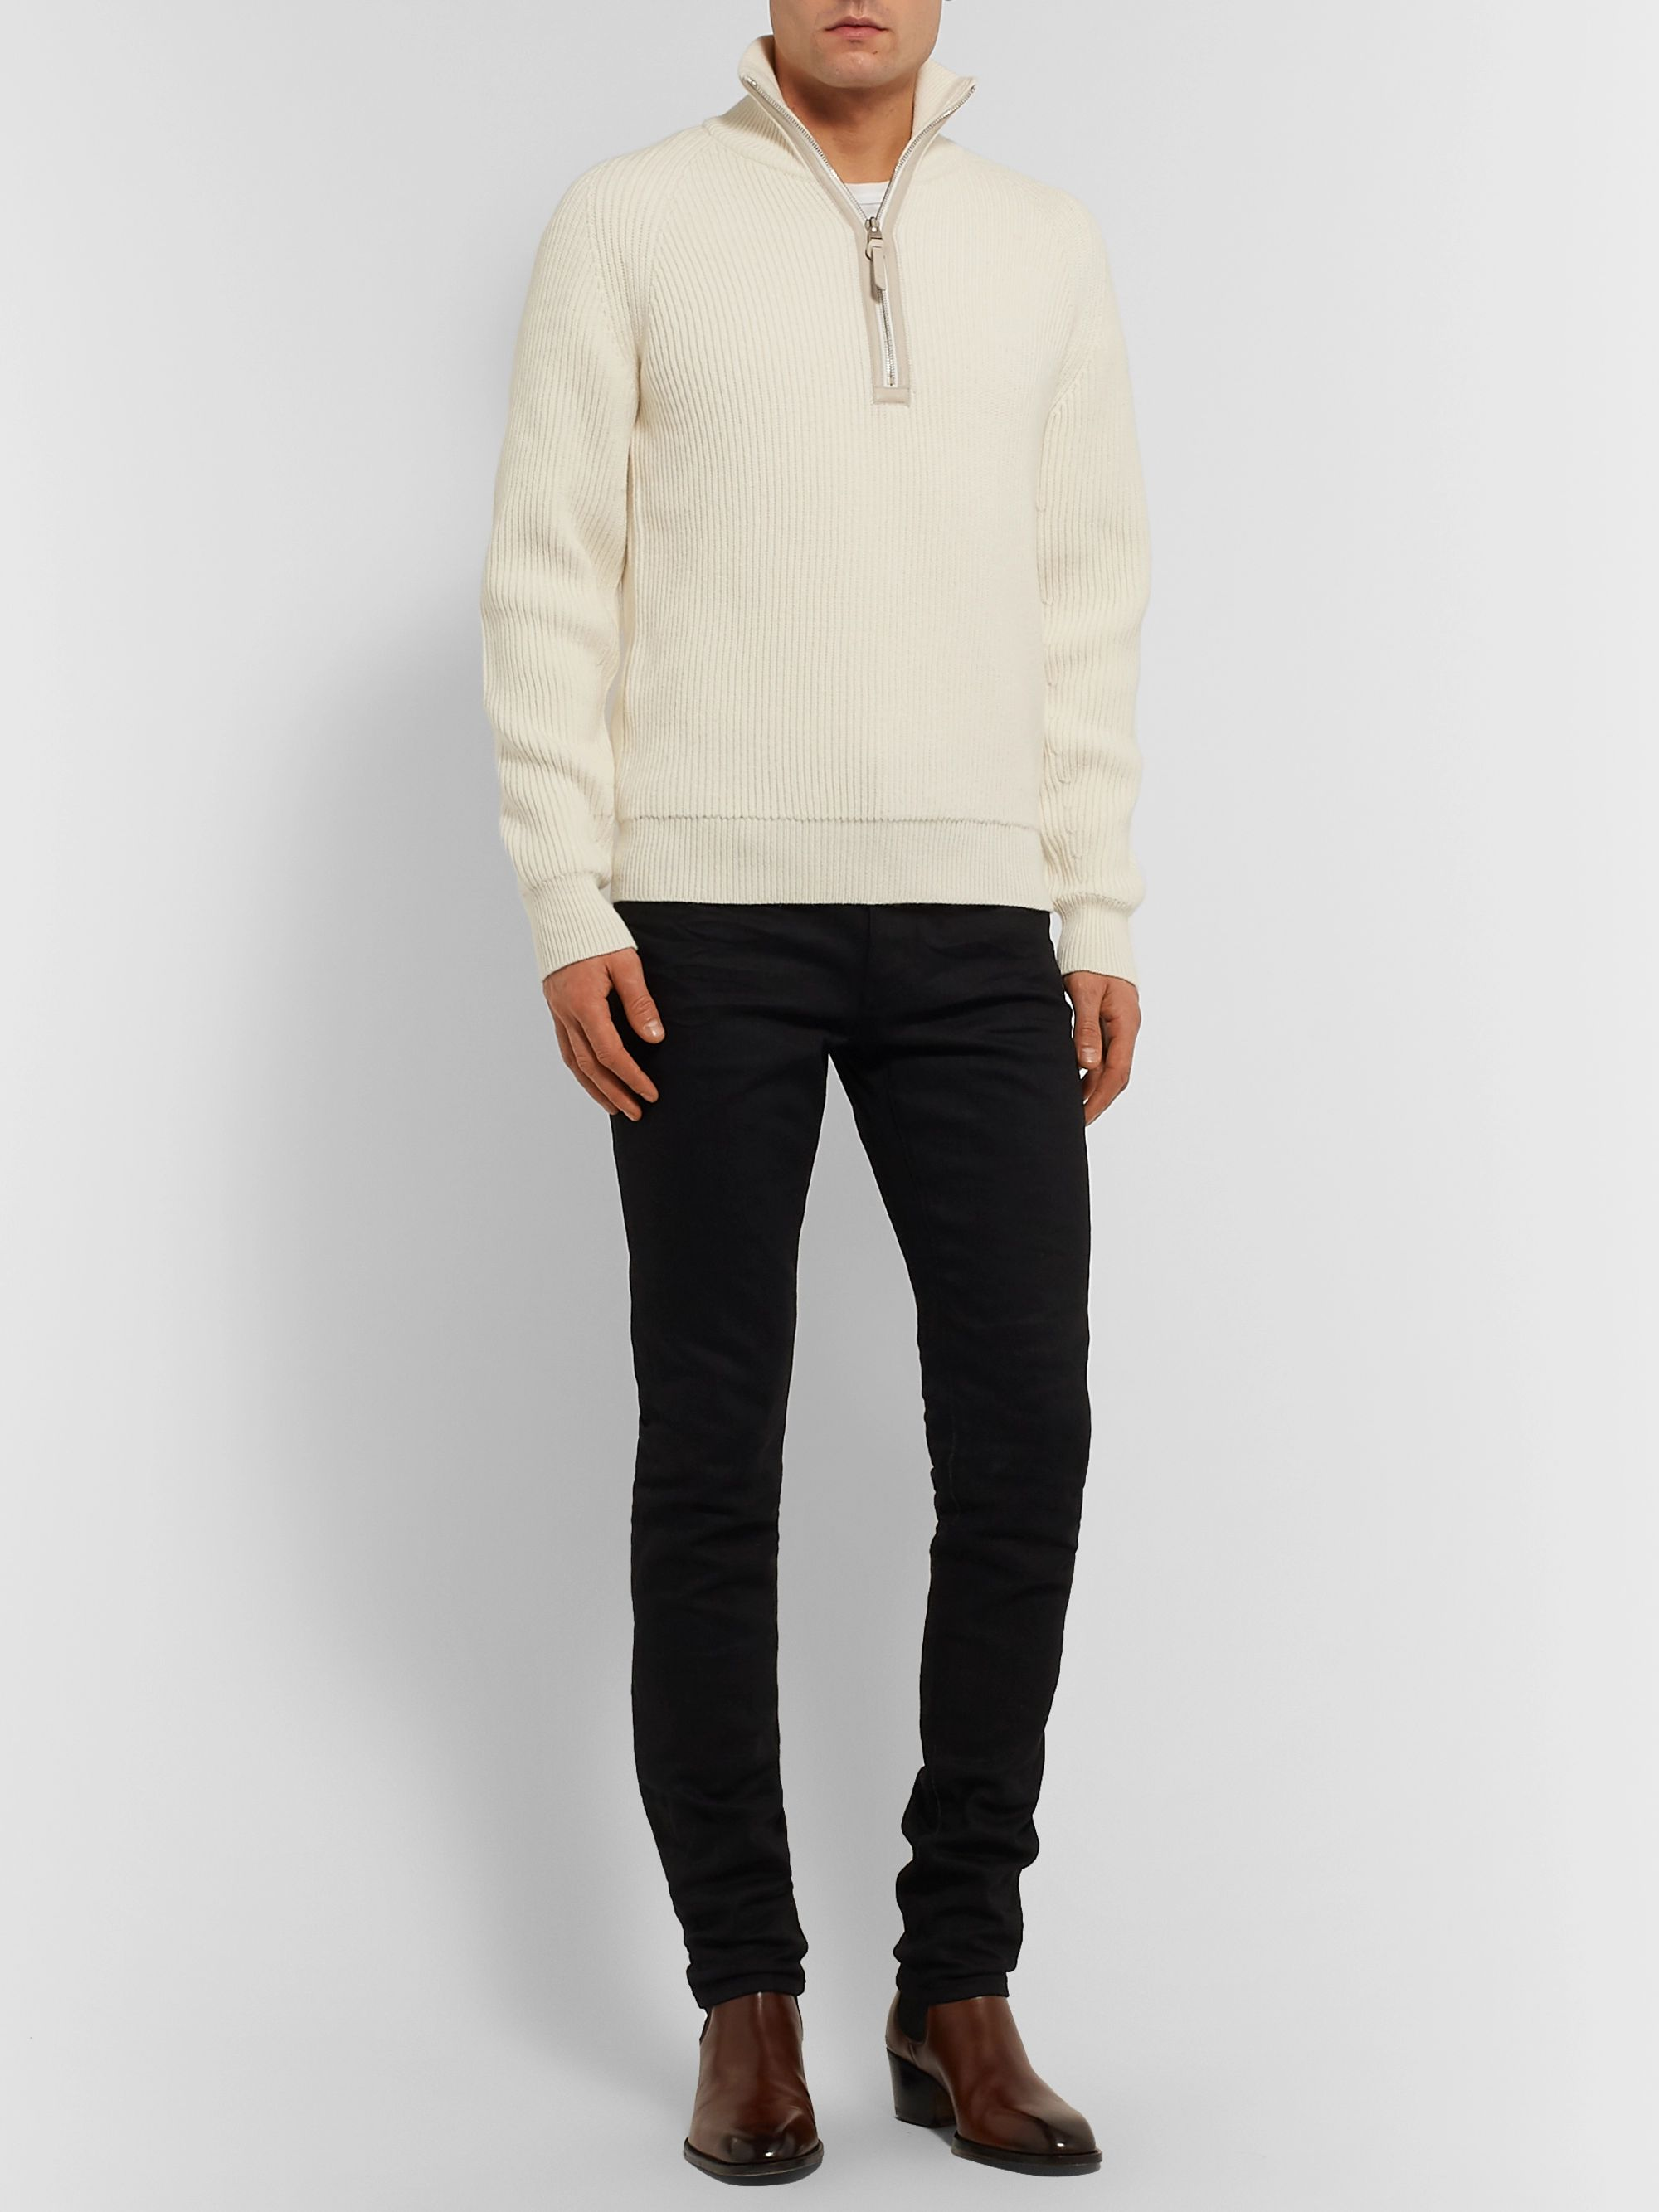 TOM FORD Slim-Fit Leather-Trimmed Ribbed Merino Wool and Cashmere-Blend Half-Zip Sweater